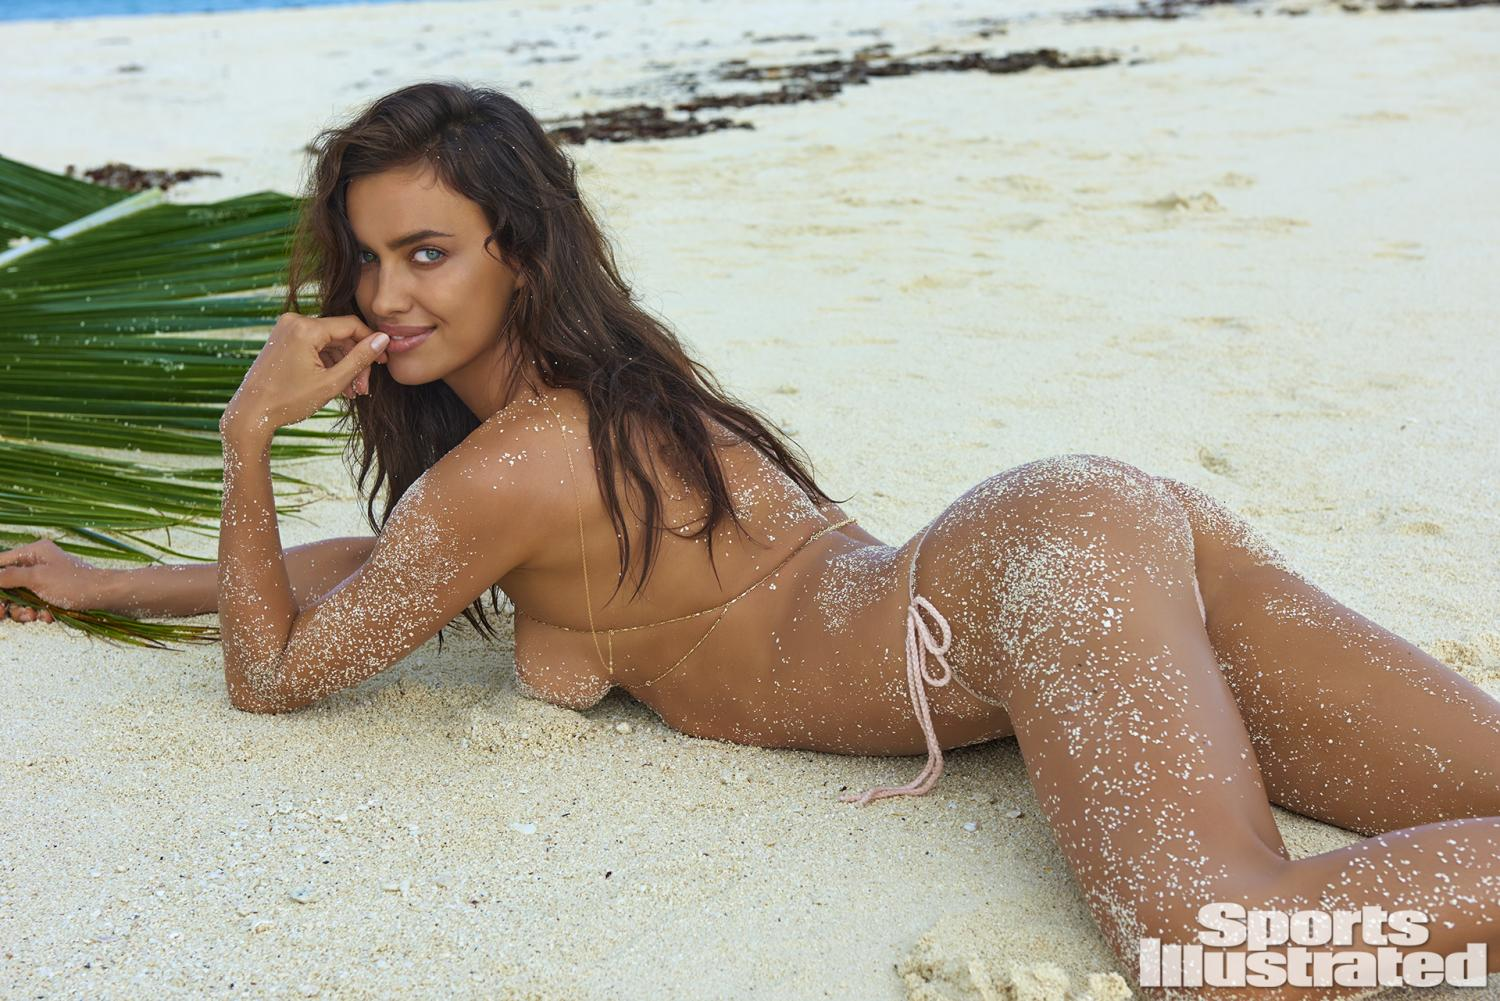 Sports illustrated swimsuit challenge takes internet by storm